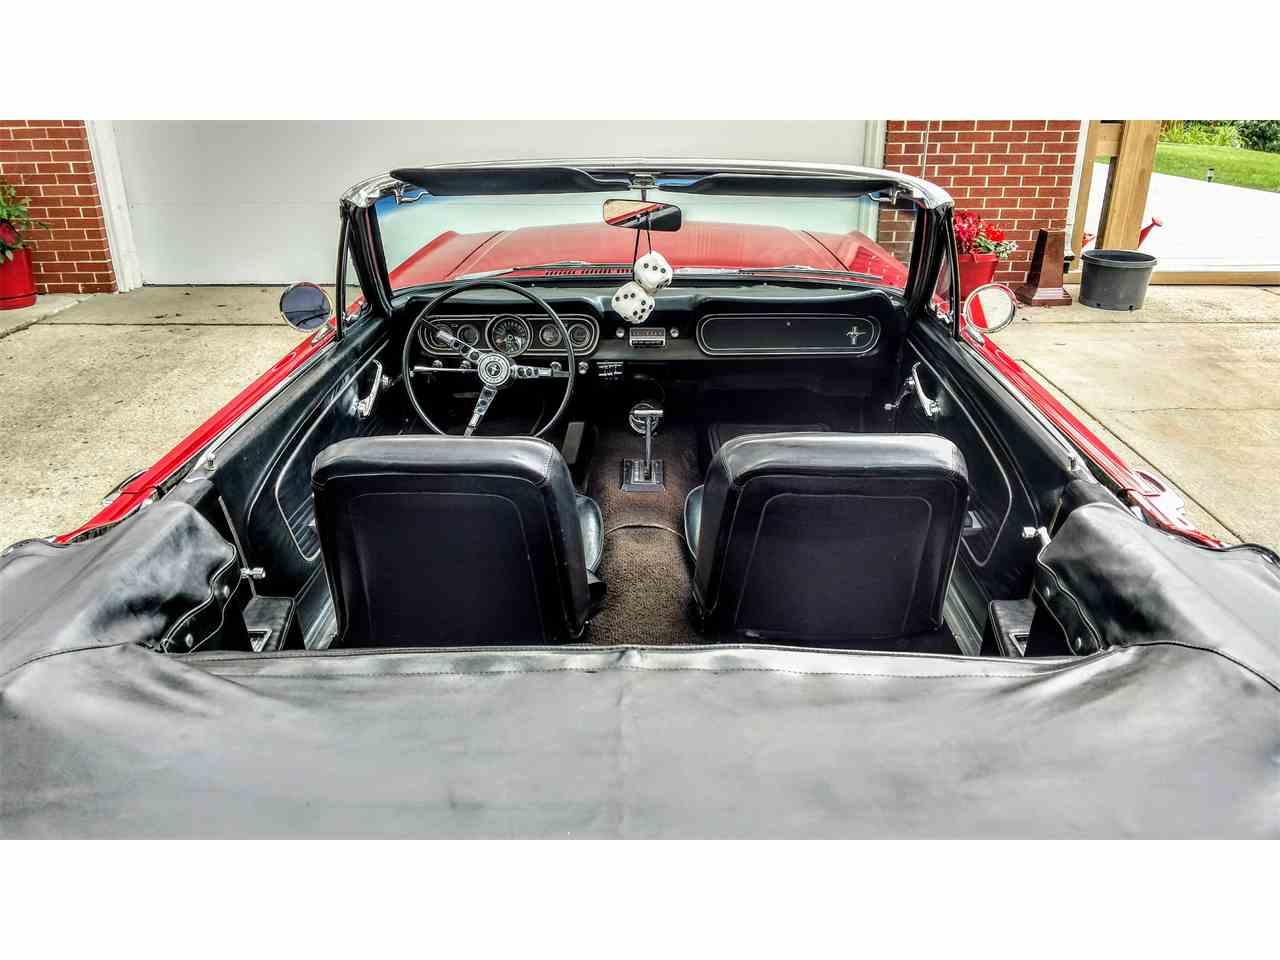 Large Picture of 1966 Ford Mustang - $20,000.00 Offered by a Private Seller - LFP4